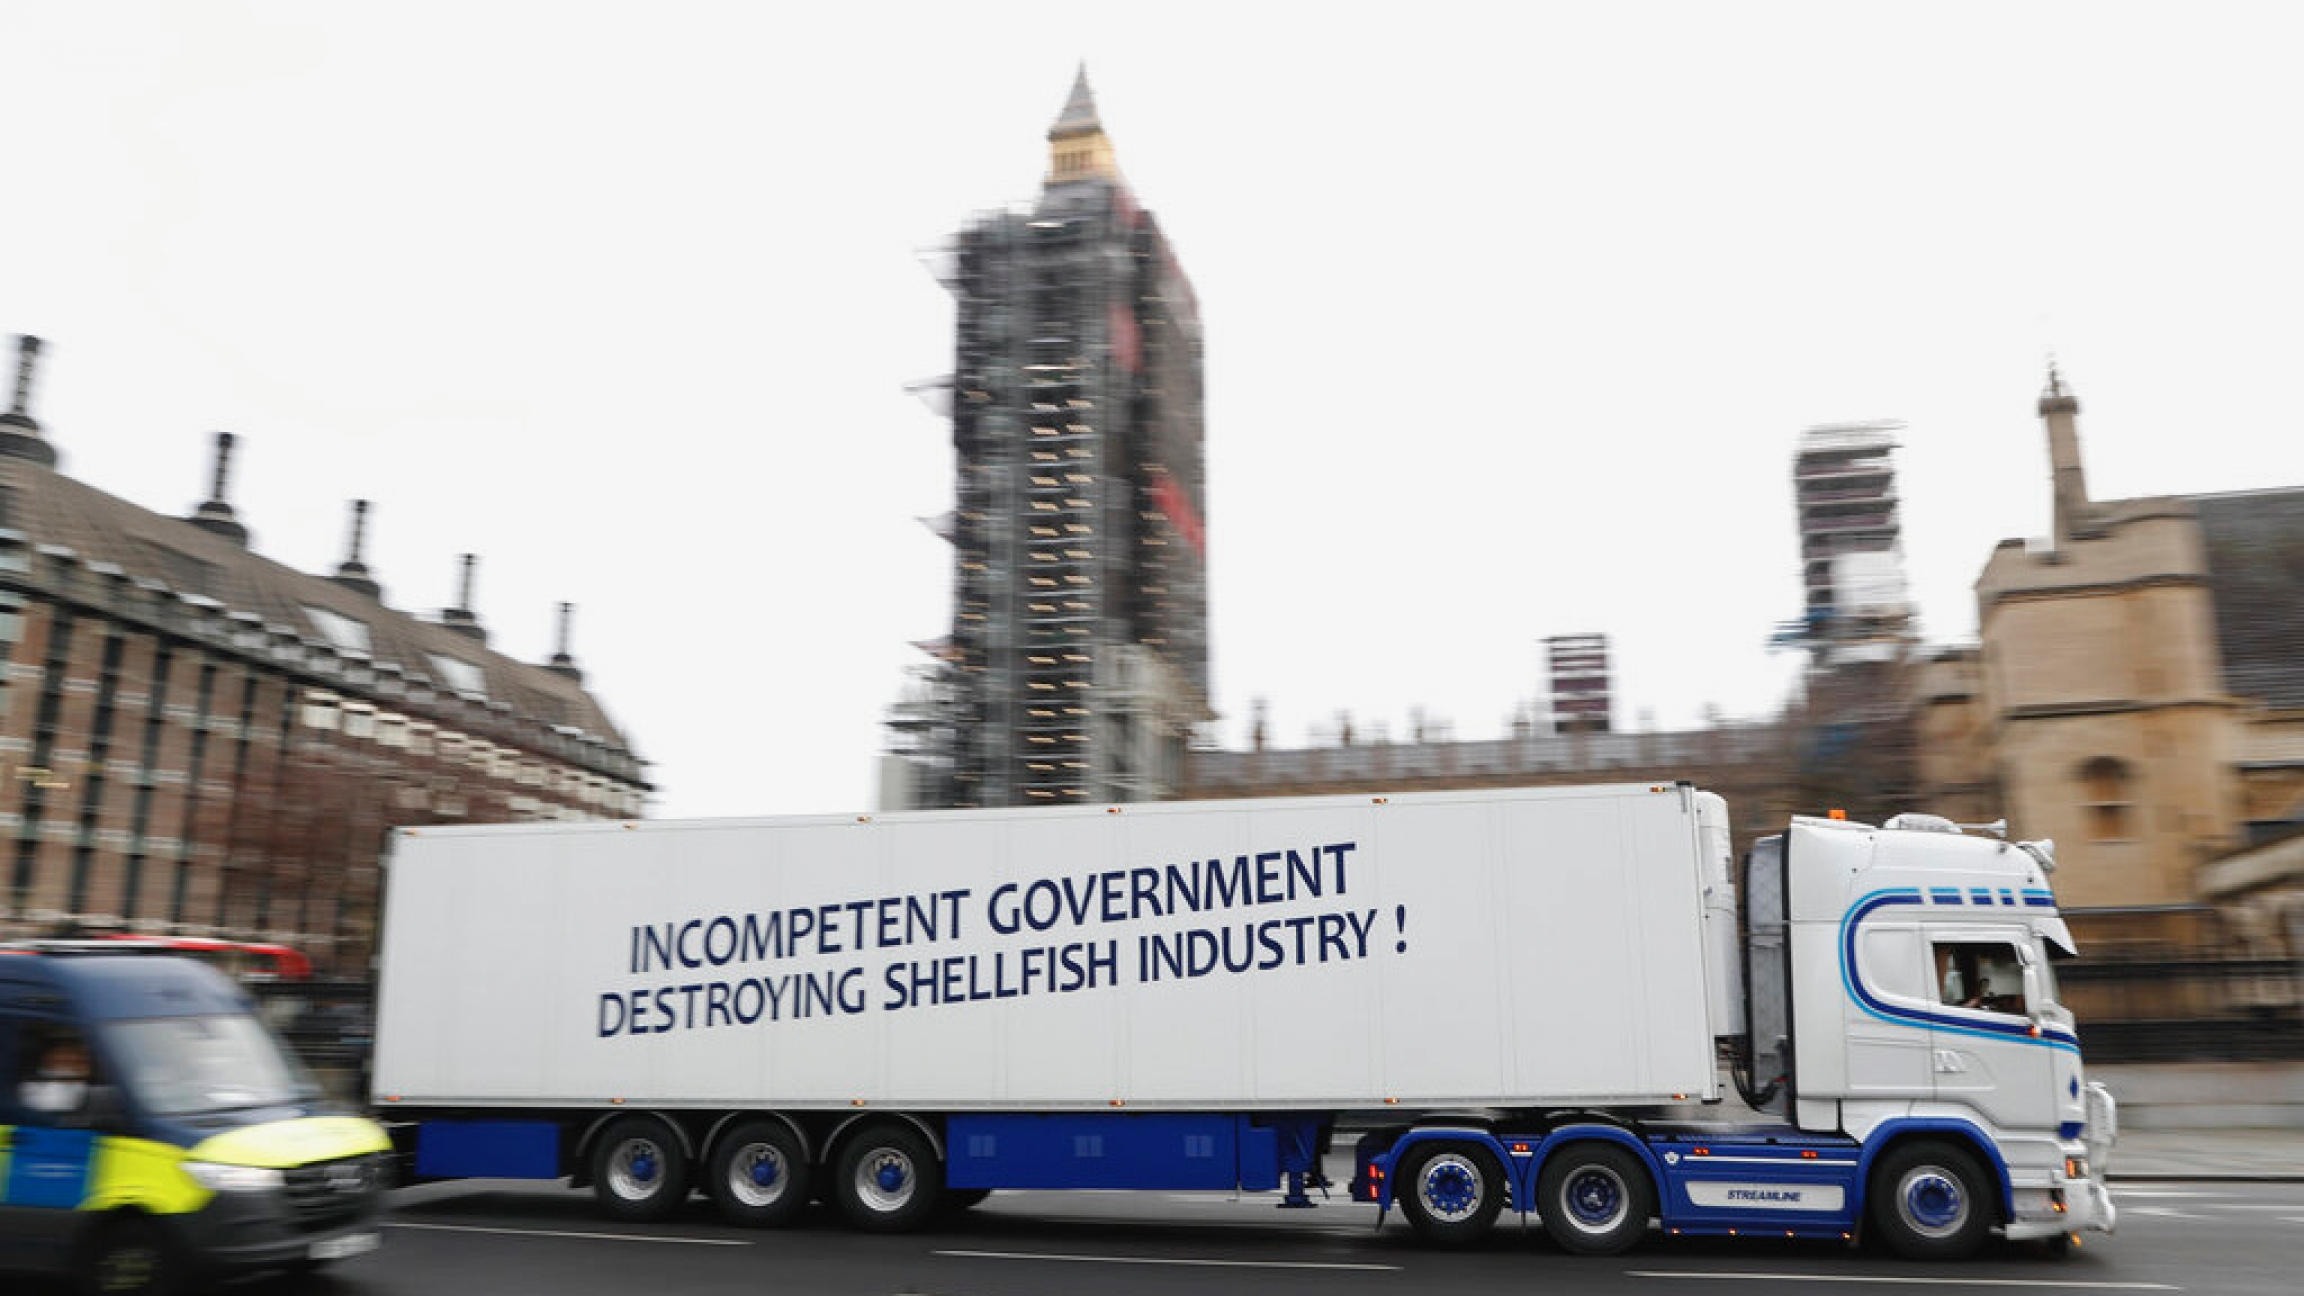 "A shellfish export truck with a protest sign written across the trailer ""Incompetent Government Destroying Shellfish Industry"" drives past the Palace of Westminster in London"